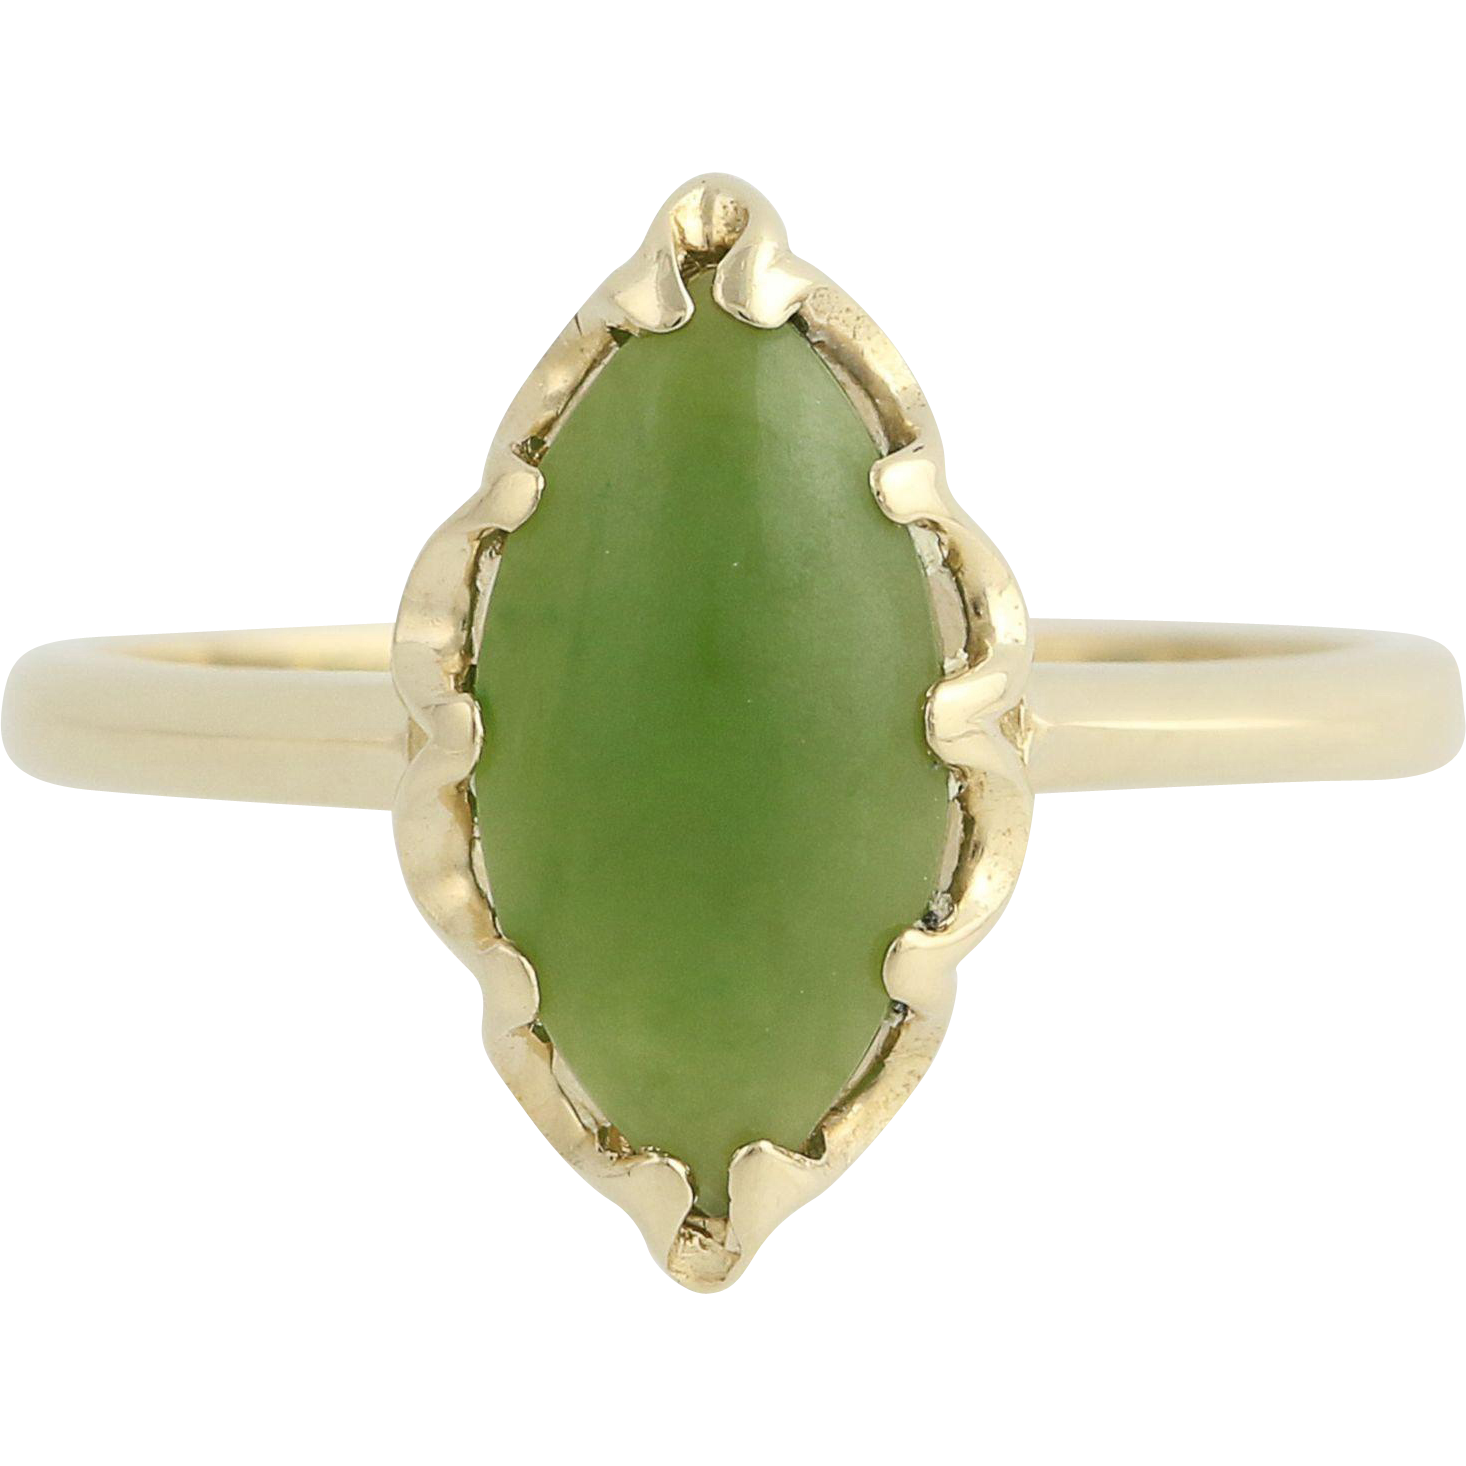 Nephrite Jade Ring - 10k Yellow Gold Solitaire Women's 6